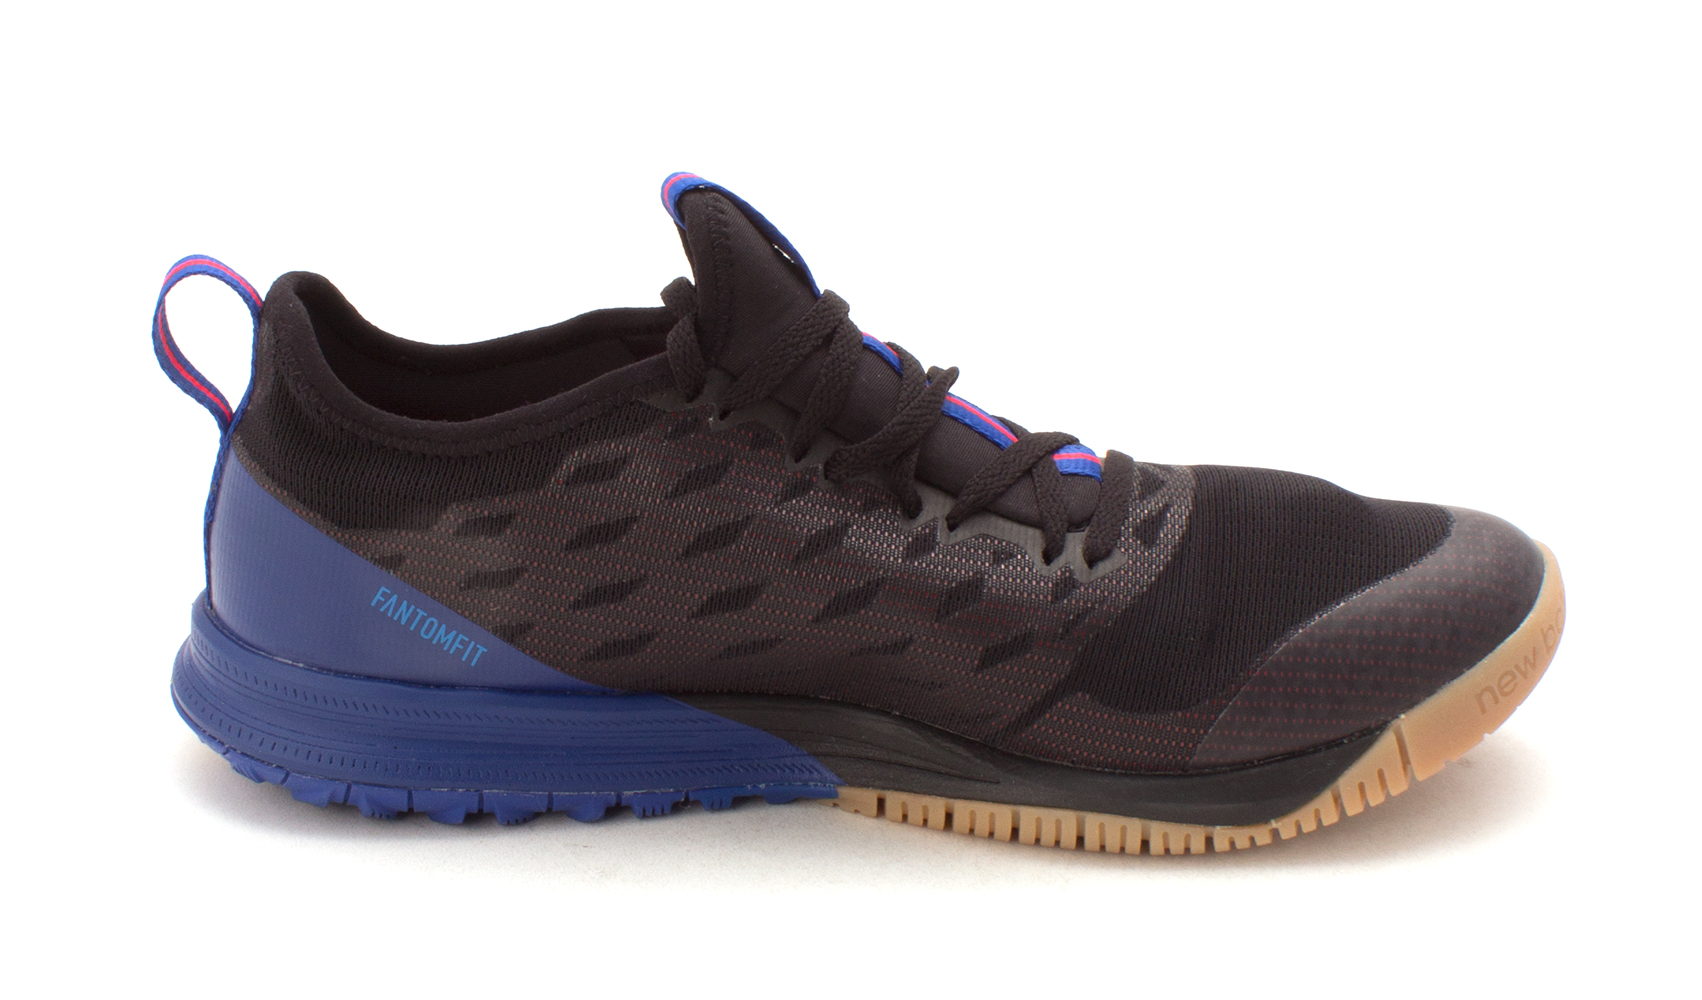 2df5283ee7581 New Balance Mens hommes Fabric Low Top Lace Up, Black/blue/red, Size 10.0